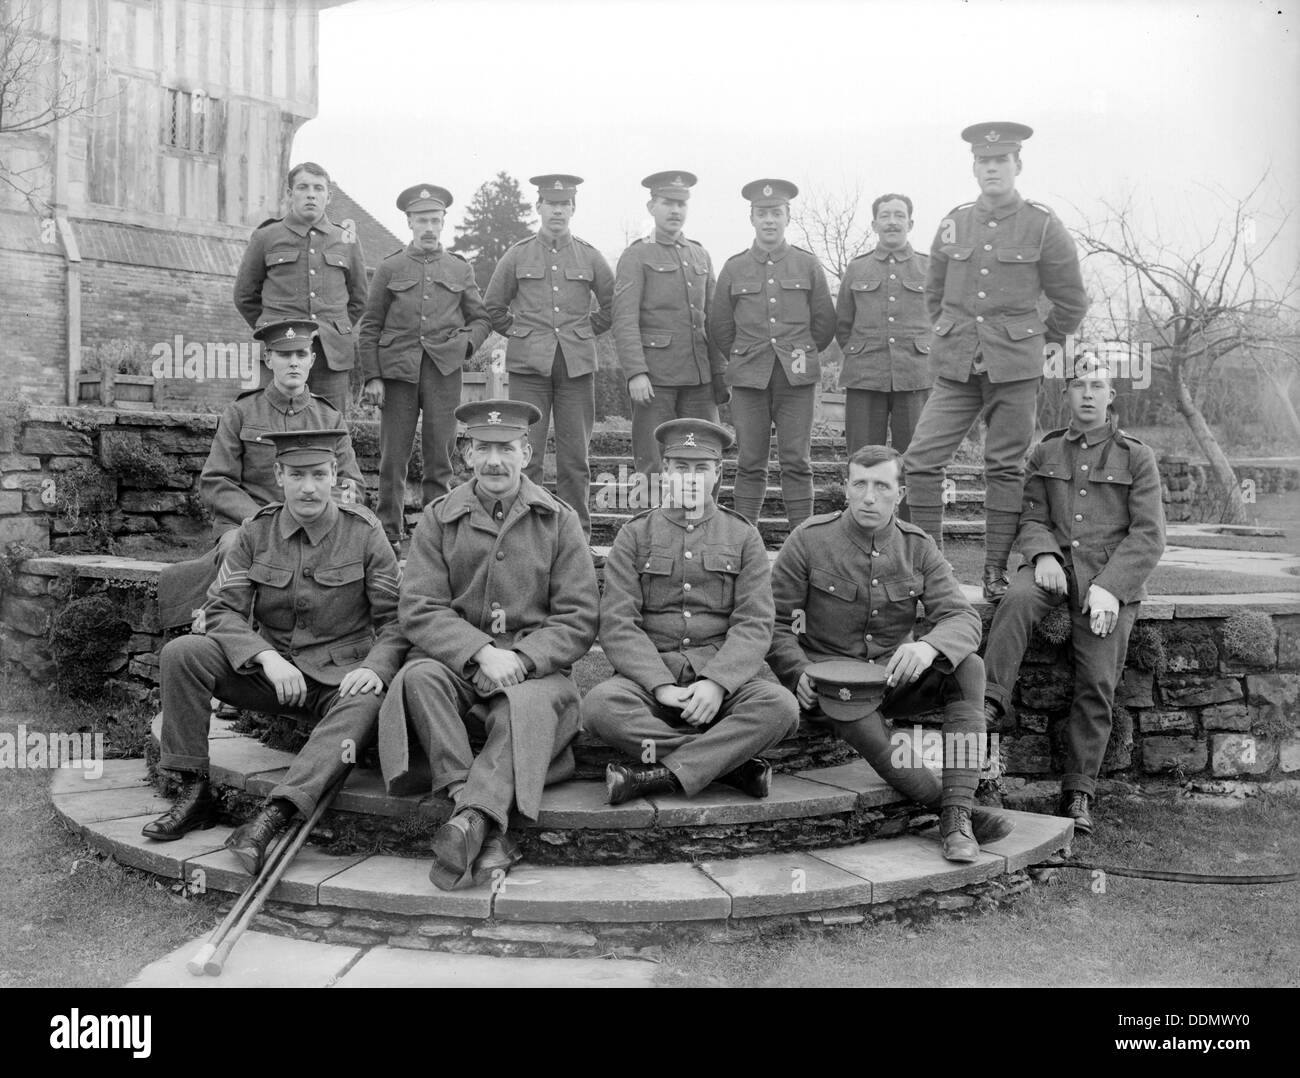 https://c7.alamy.com/comp/DDMWY0/convalescent-soldiers-at-great-dixter-northiam-east-sussex-wwi-1915-DDMWY0.jpg